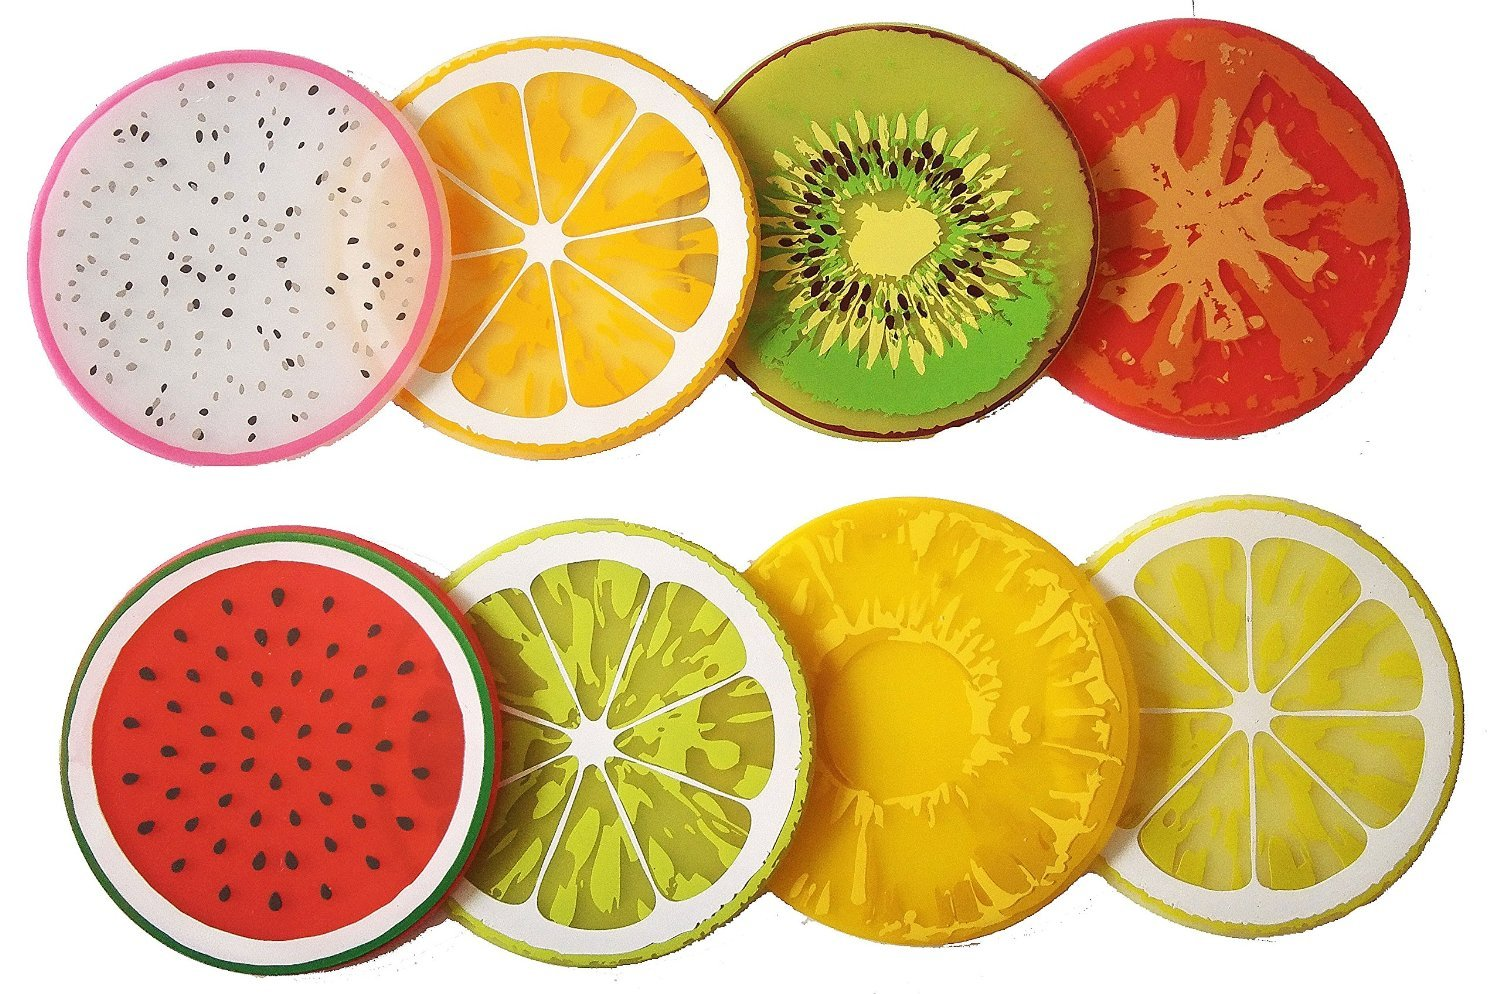 Kanggest 8Pcs Colorful Fruit Silicone Cup Mat Fruit Slices Pattern Coaster Drinks Tea Cup Mat Round Bowl Holder Tableware Placemat (Color Random)